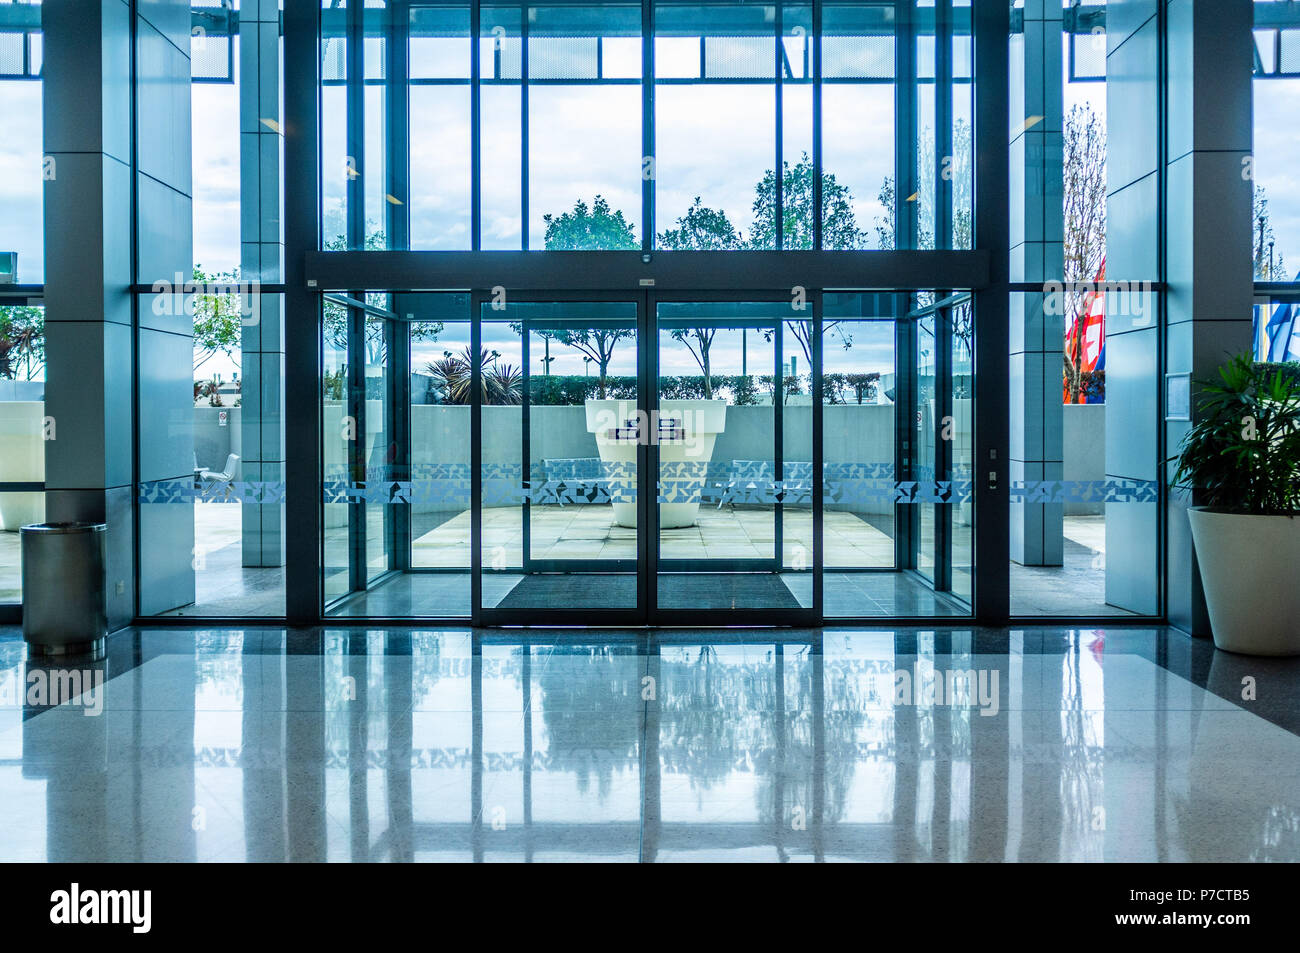 Glass Automatic Sliding Doors Entrance Into Shopping Mall Stock